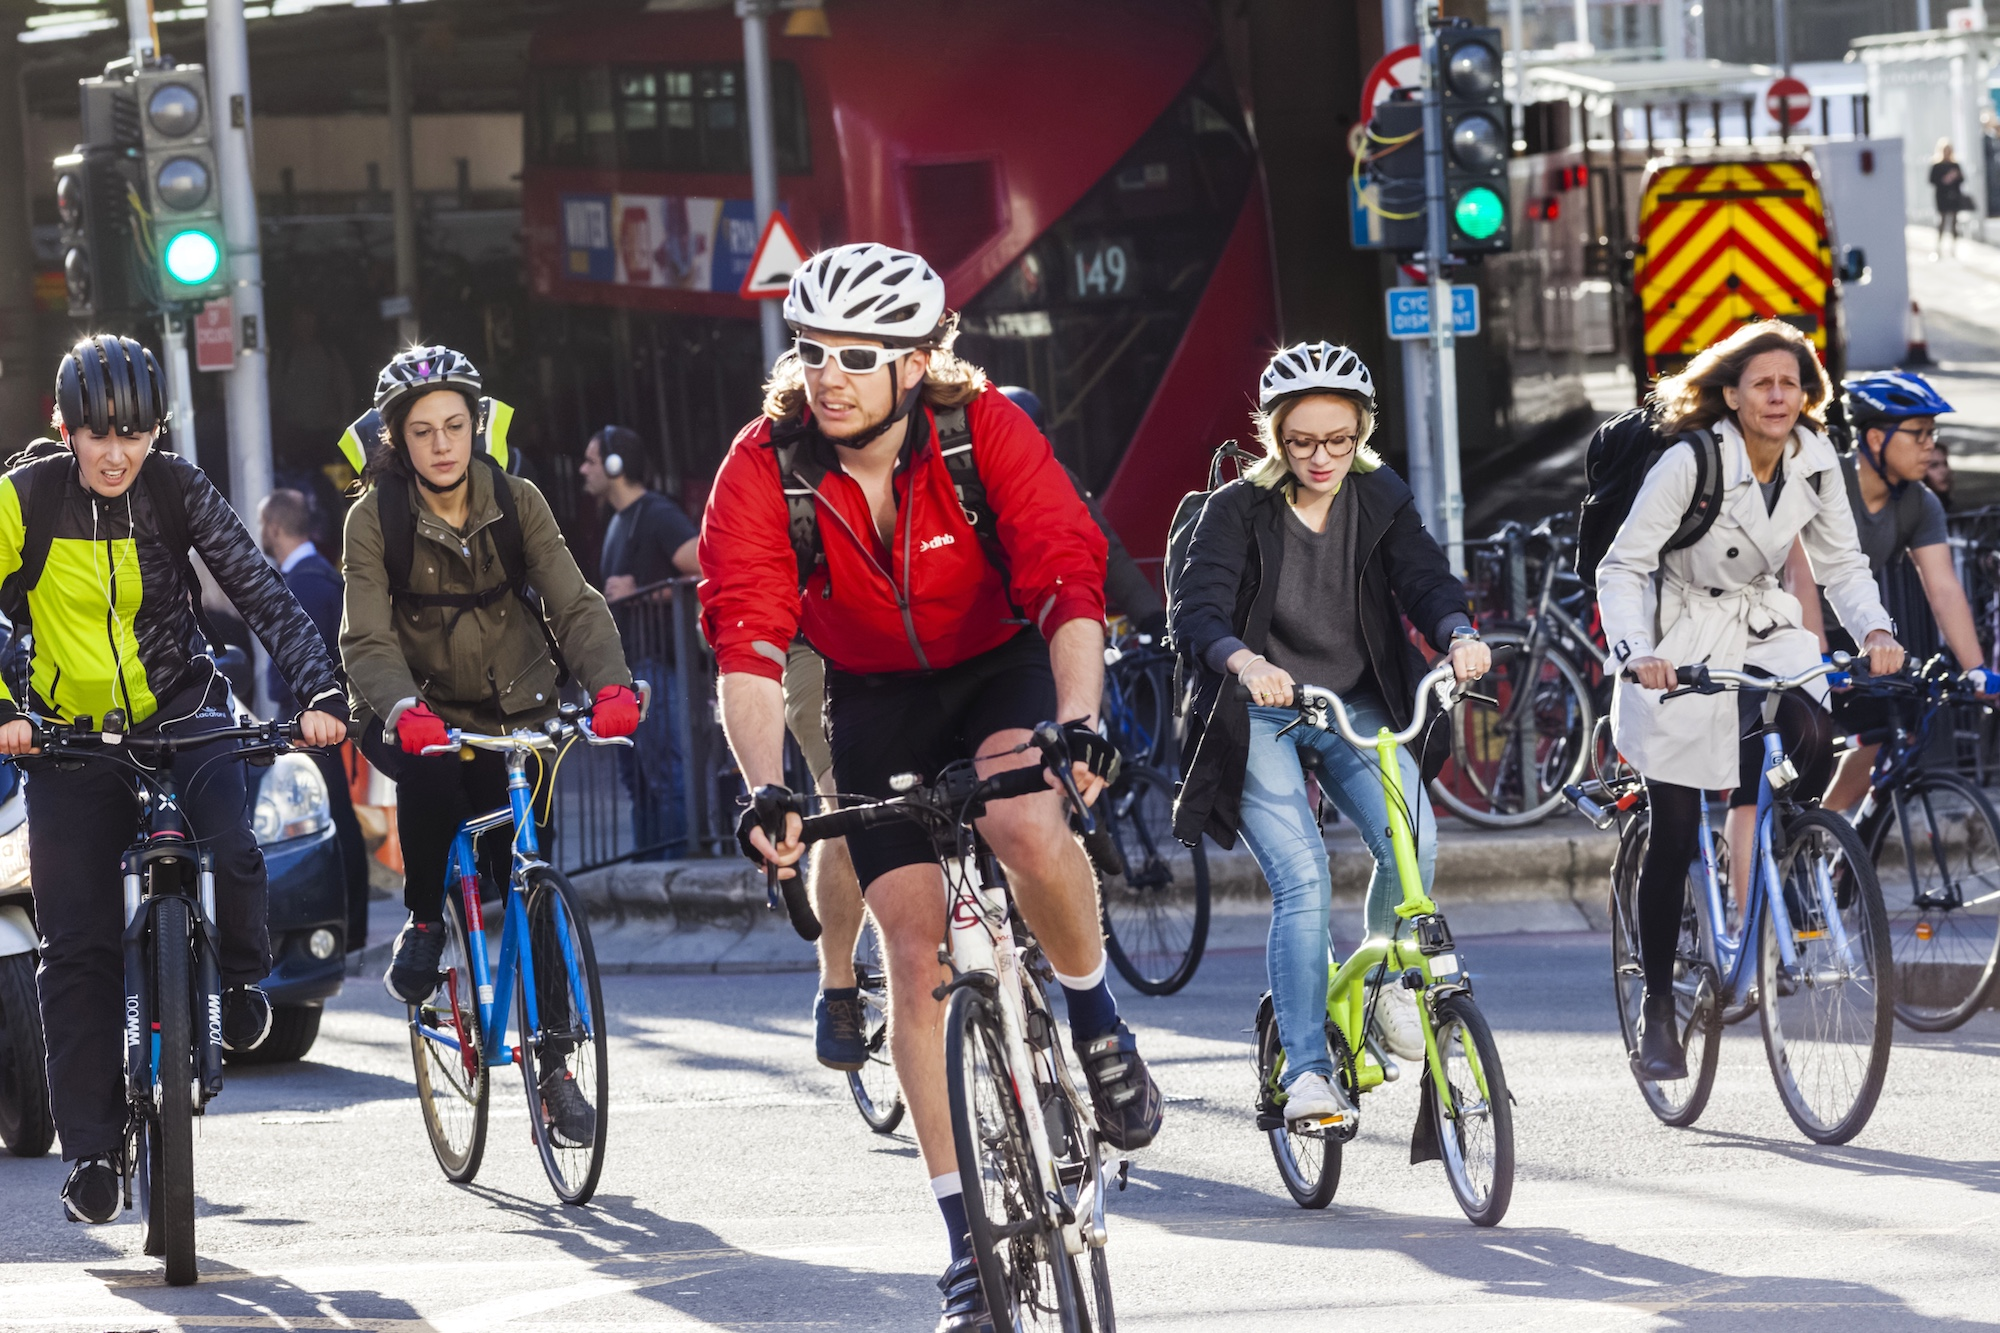 Half a million £50 bike vouchers: UK Government gives further details on coronavirus cycling investment - Cycling Weekly